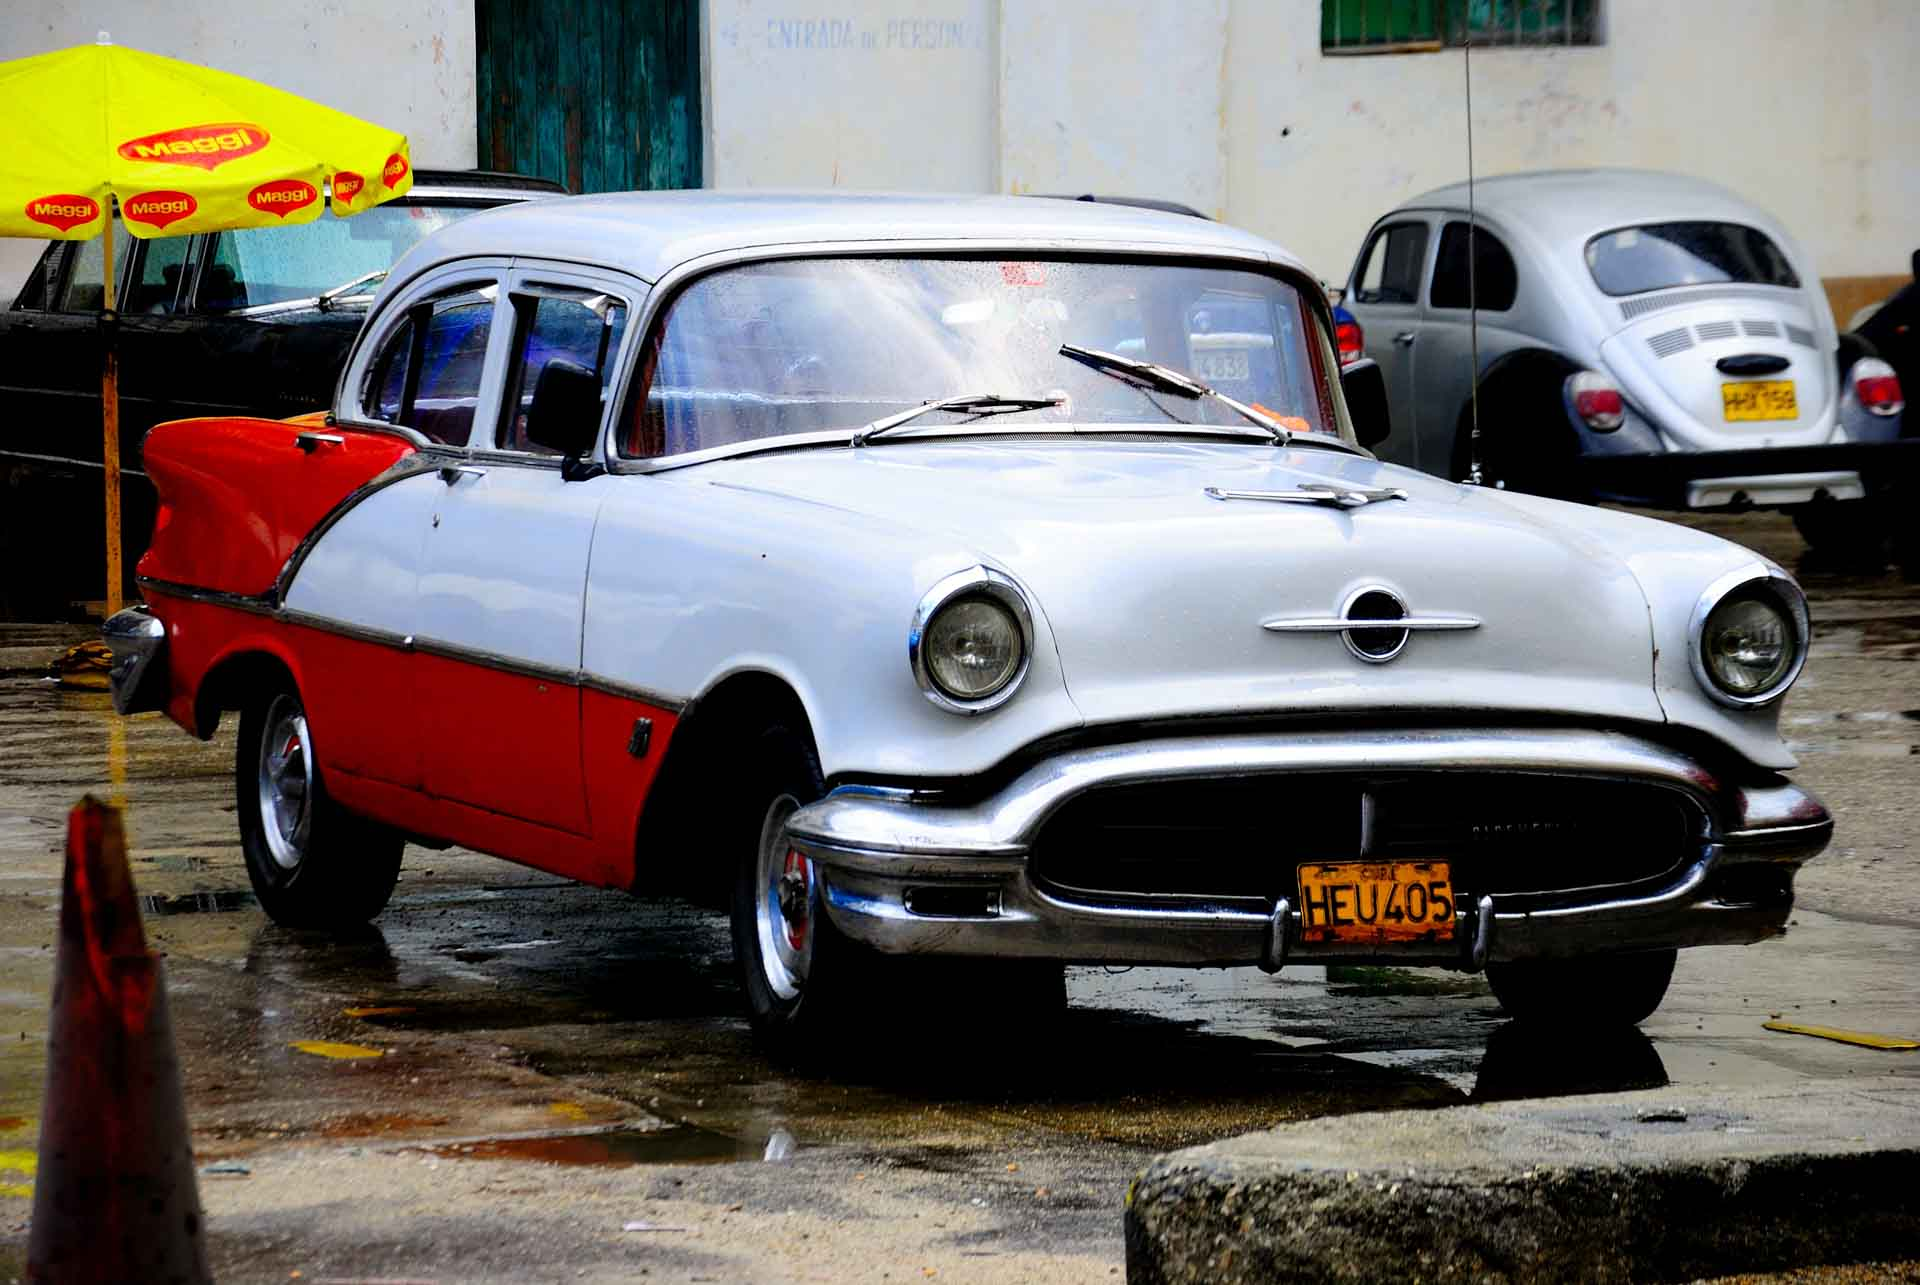 Havana Cuba Vintage Car 5, havana, cuba, pescart, photo blog, travel blog, blog, photo travel blog, enrico pescantini, pescantini, havana, cuba, pescart, photo blog, travel blog, blog, photo travel blog, enrico pescantini, pescantini